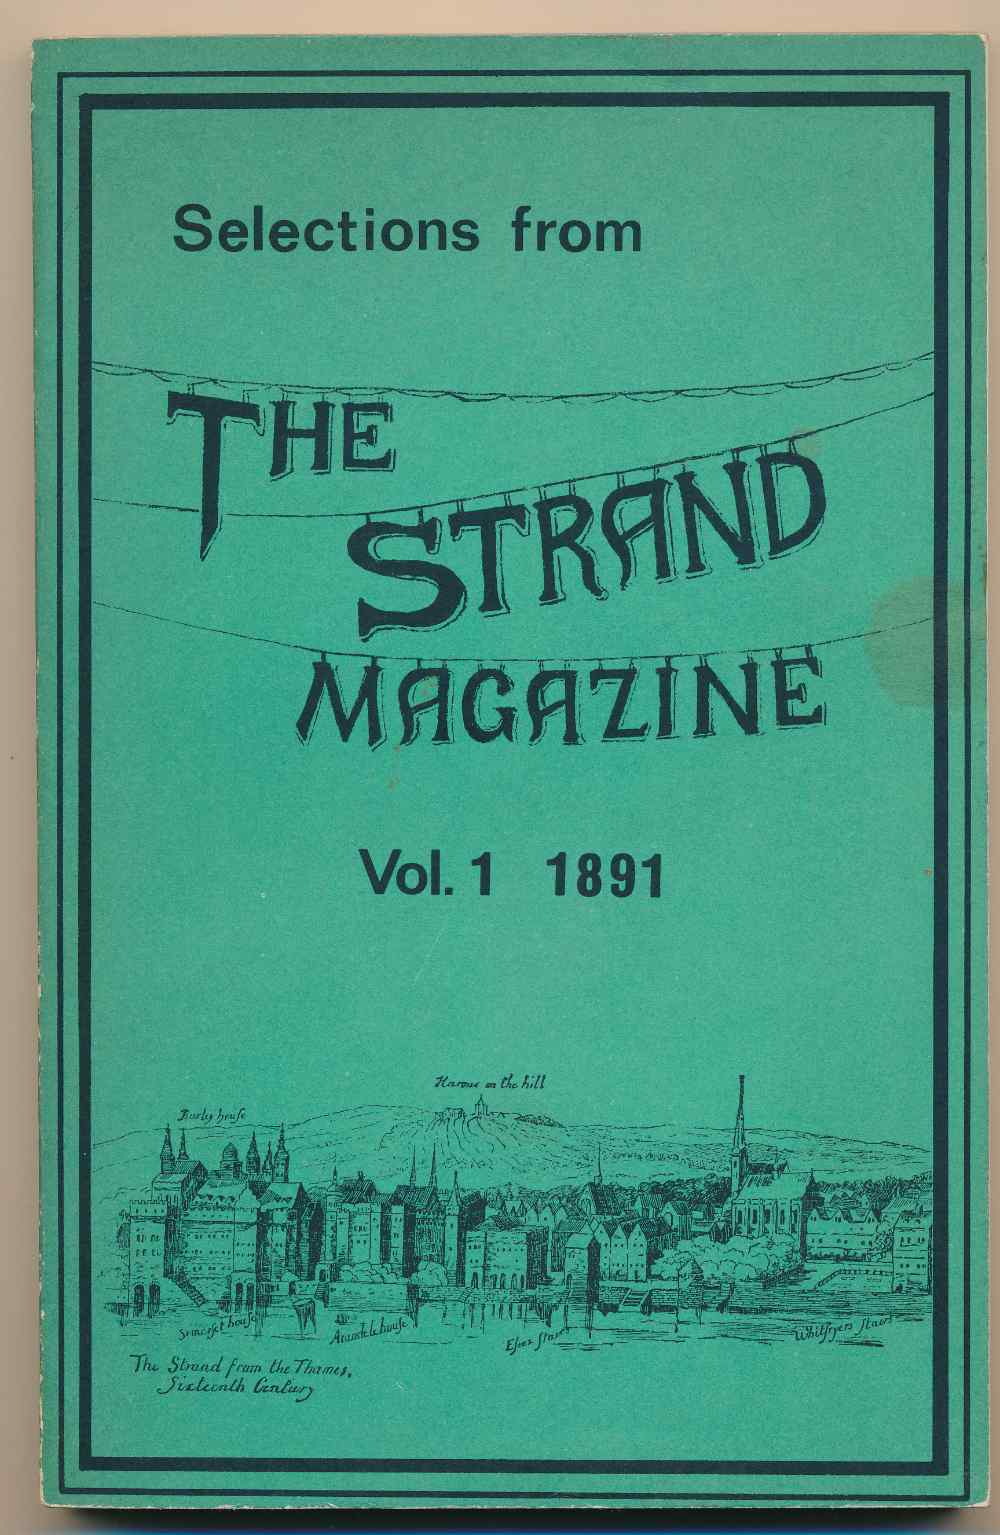 Selections from the Strand Magazine Vol. 1 1891